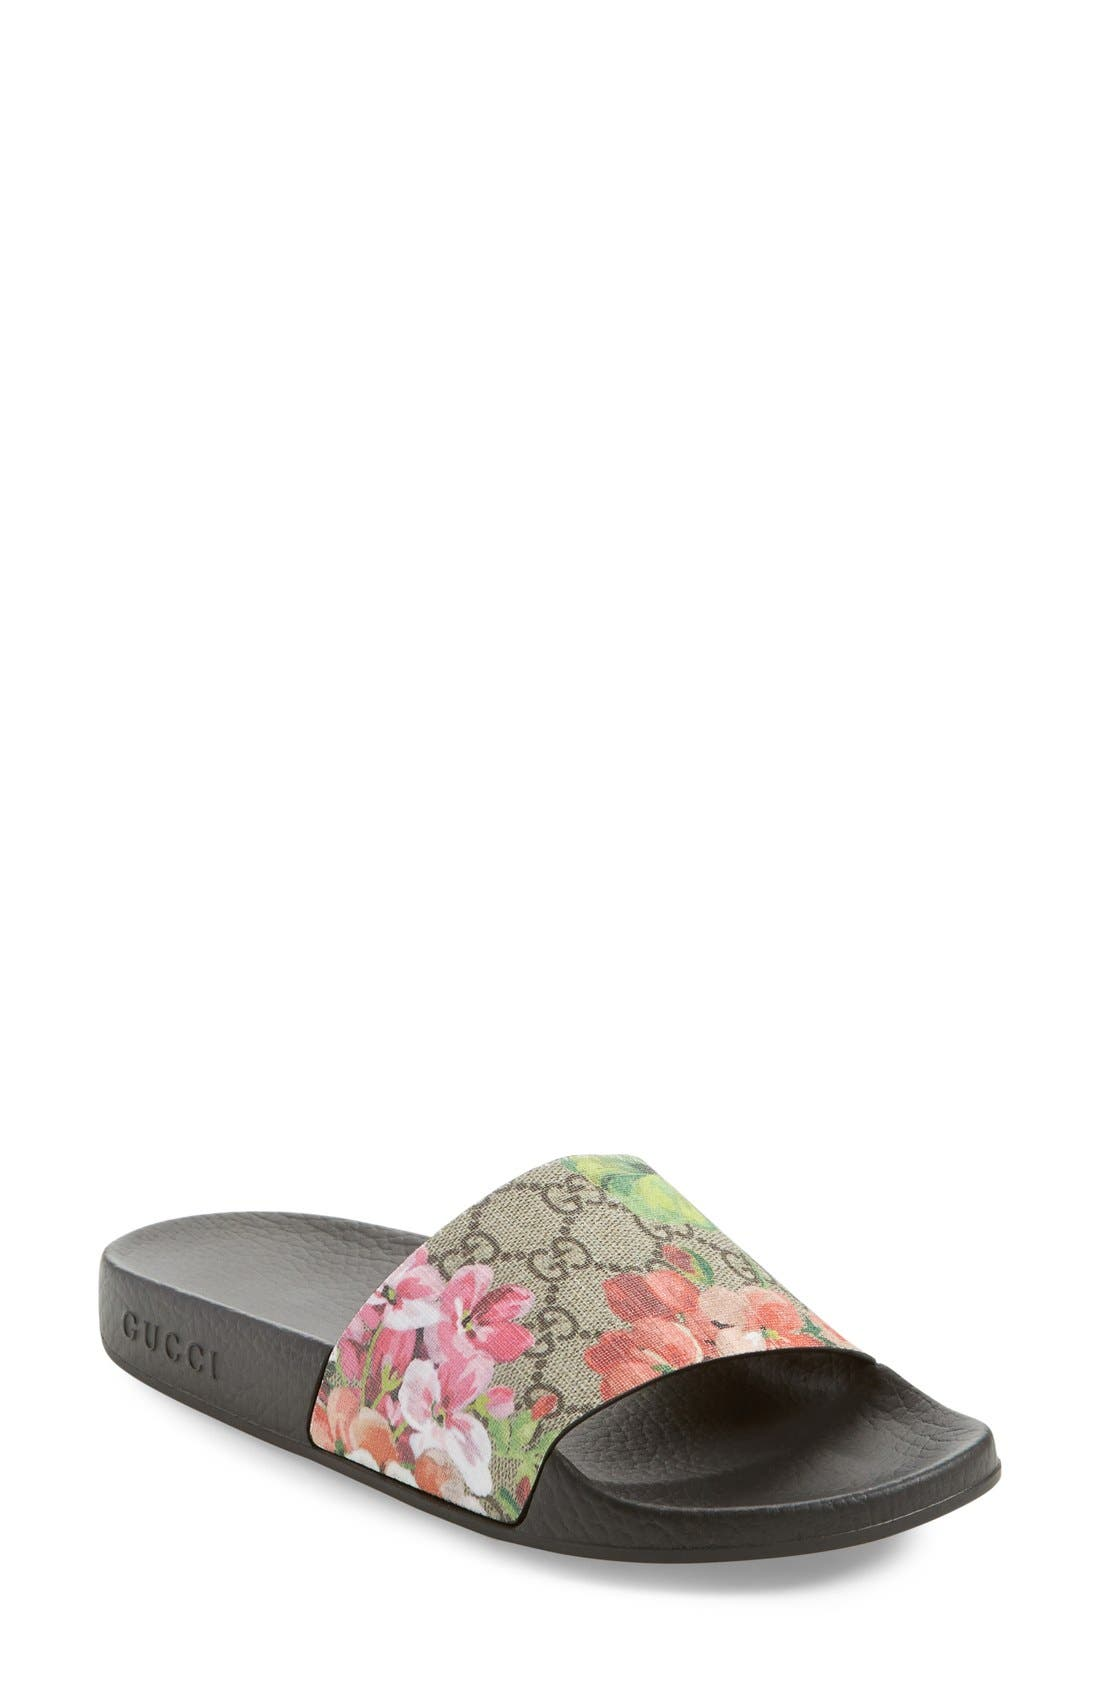 Gucci Pursuit Slide Sandal (Women)